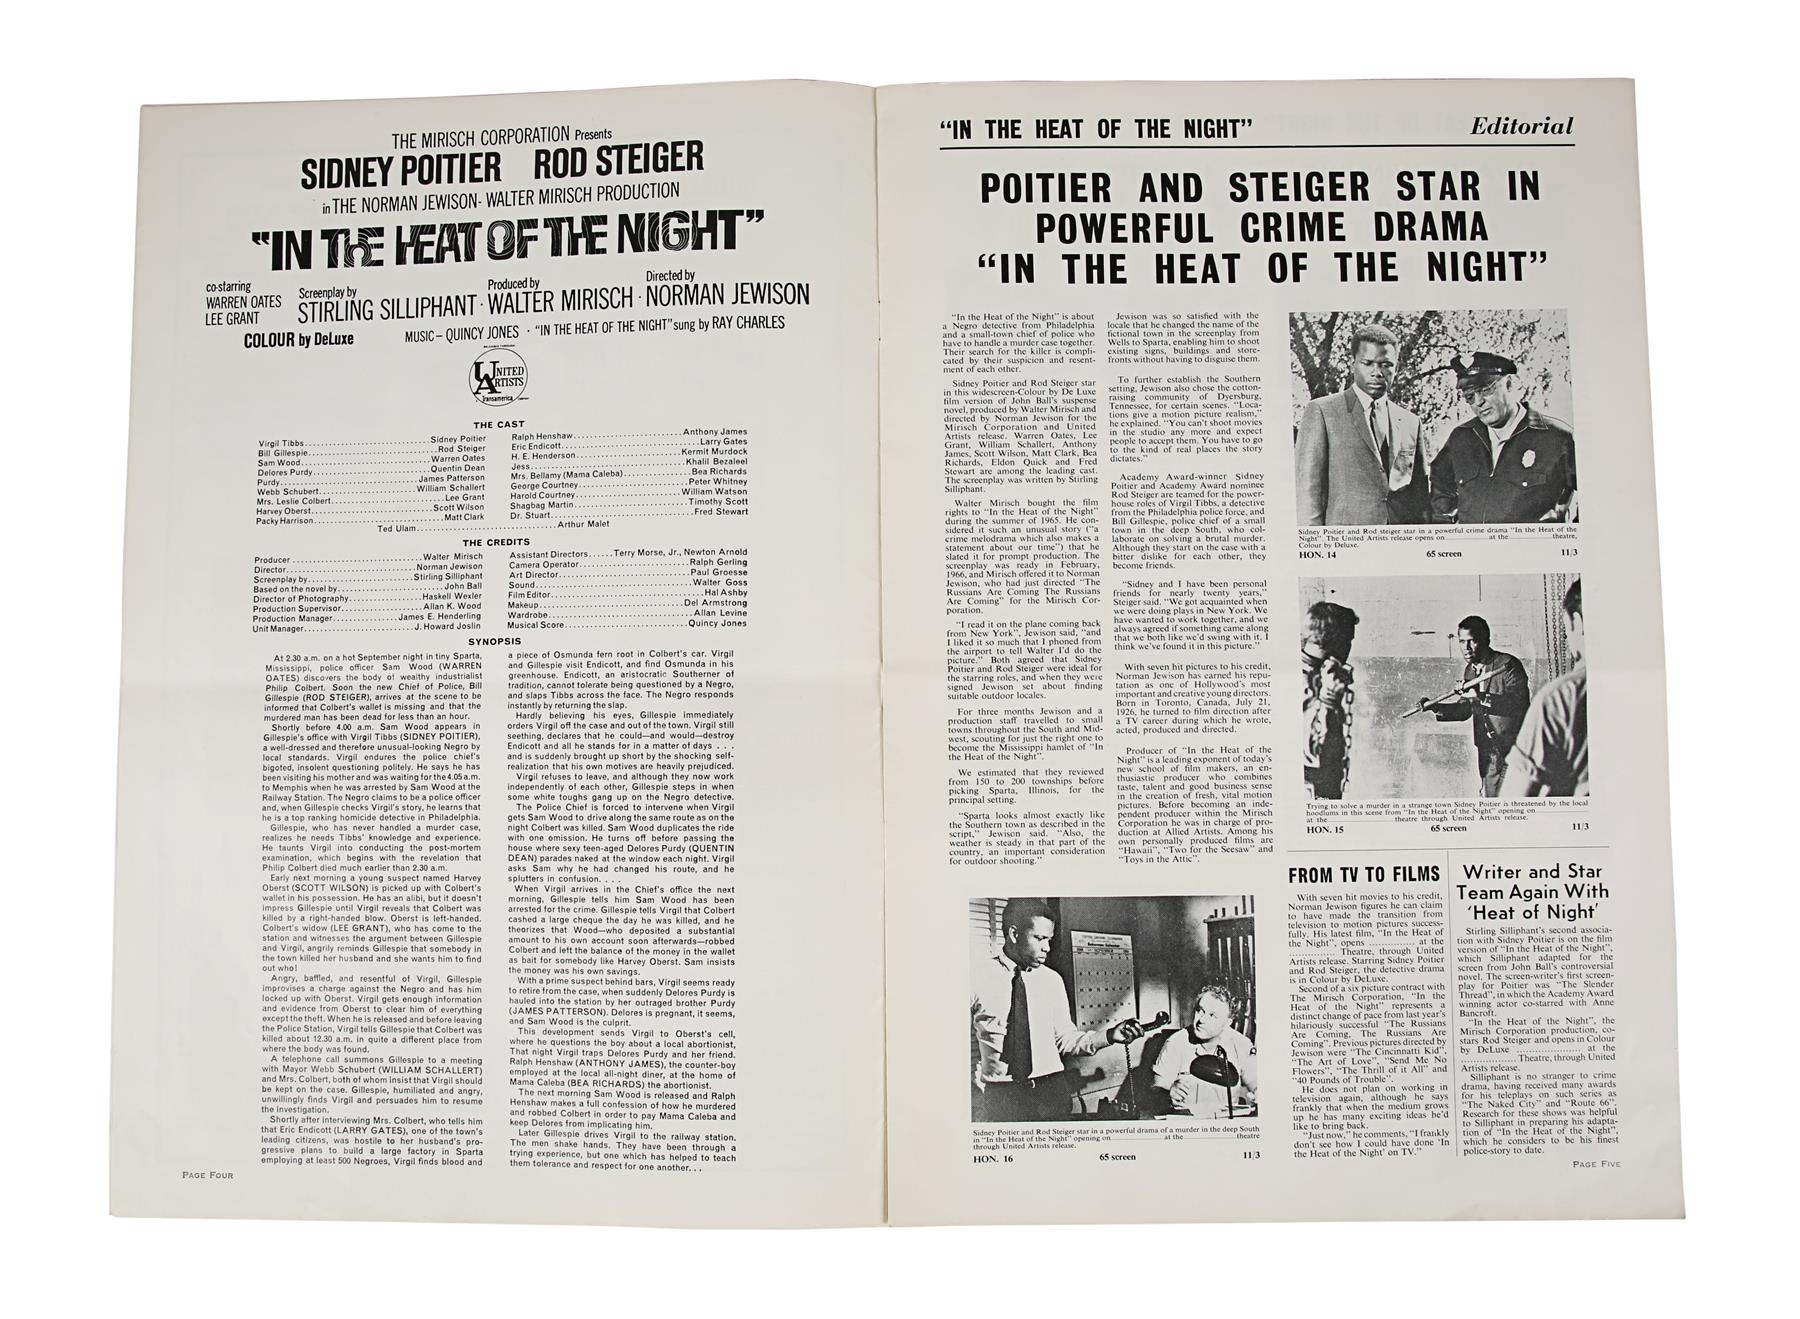 IN THE HEAT OF THE NIGHT (1967) - British Exhibitors' Campaign Book, 1967, Autographed by Sidney Poi - Image 3 of 6